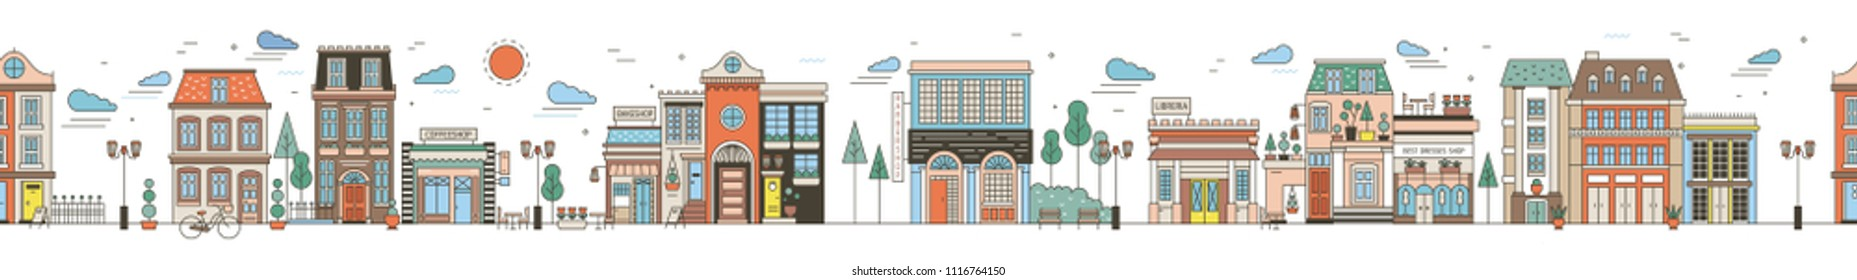 Seamless horizontal urban landscape with city street. Cityscape with beautiful buildings, residential houses, shops, park, driving car. Modern colorful vector illustration in line art style.